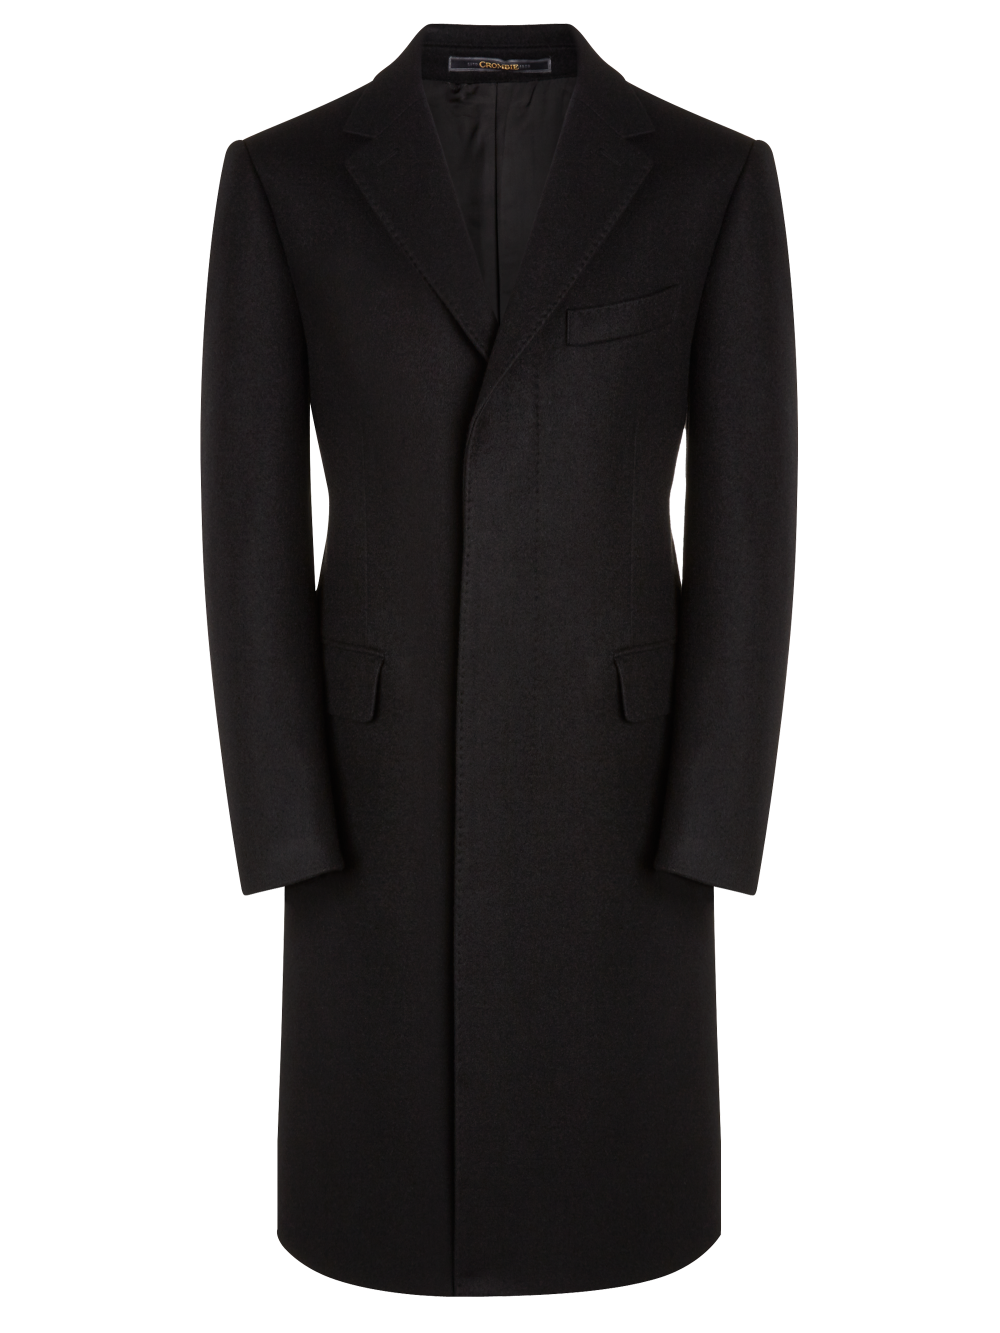 59bc087cc Black Fly-Fronted Overcoat - Coats - Menswear | UK | Black overcoat ...